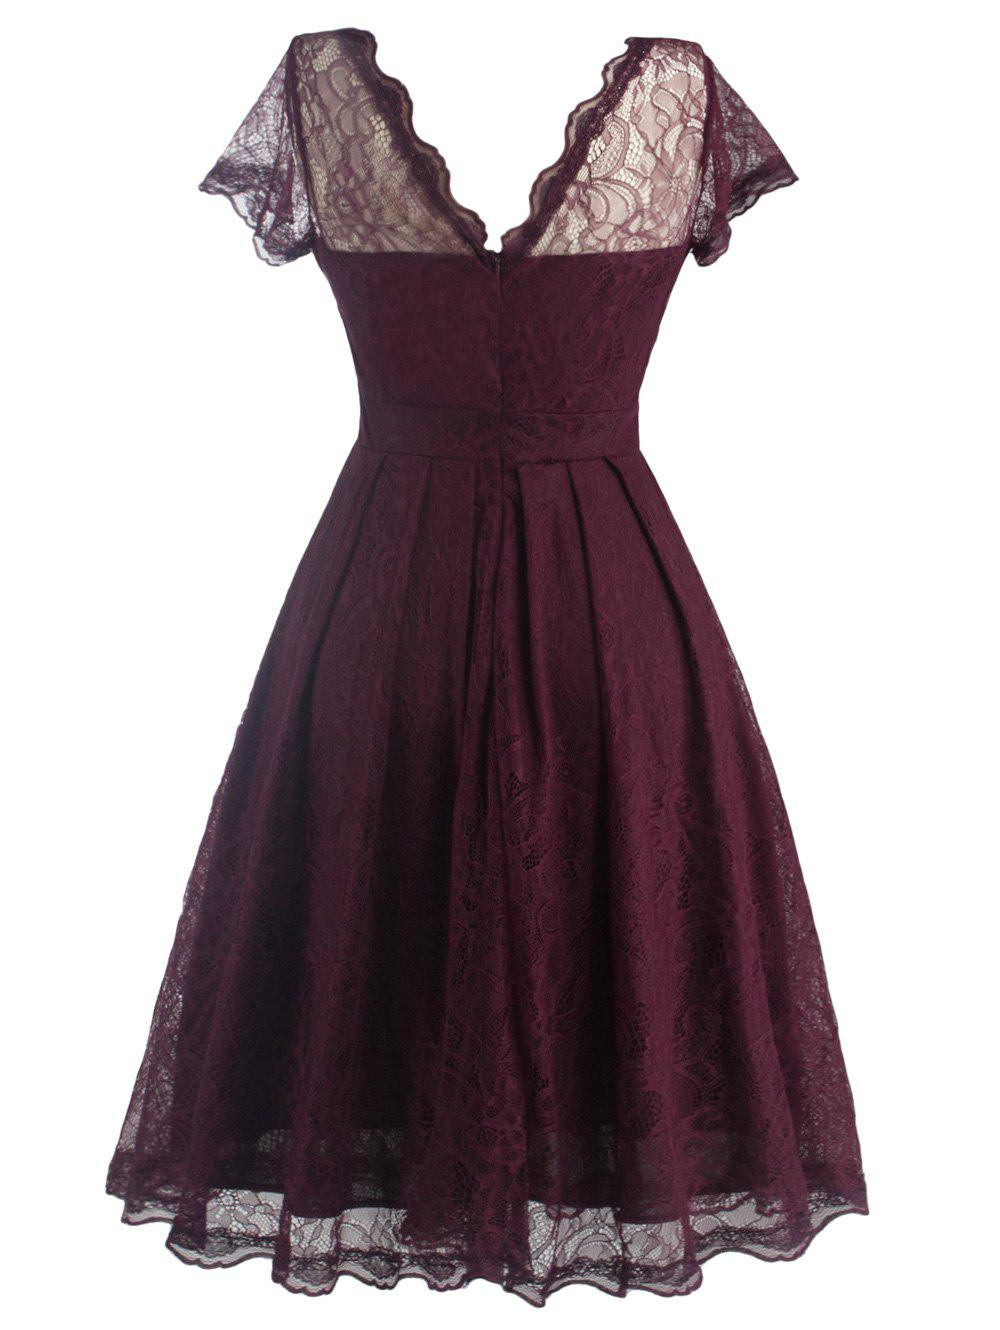 Funky Short Wedding A Line Dress With Sleeves - WINE RED L